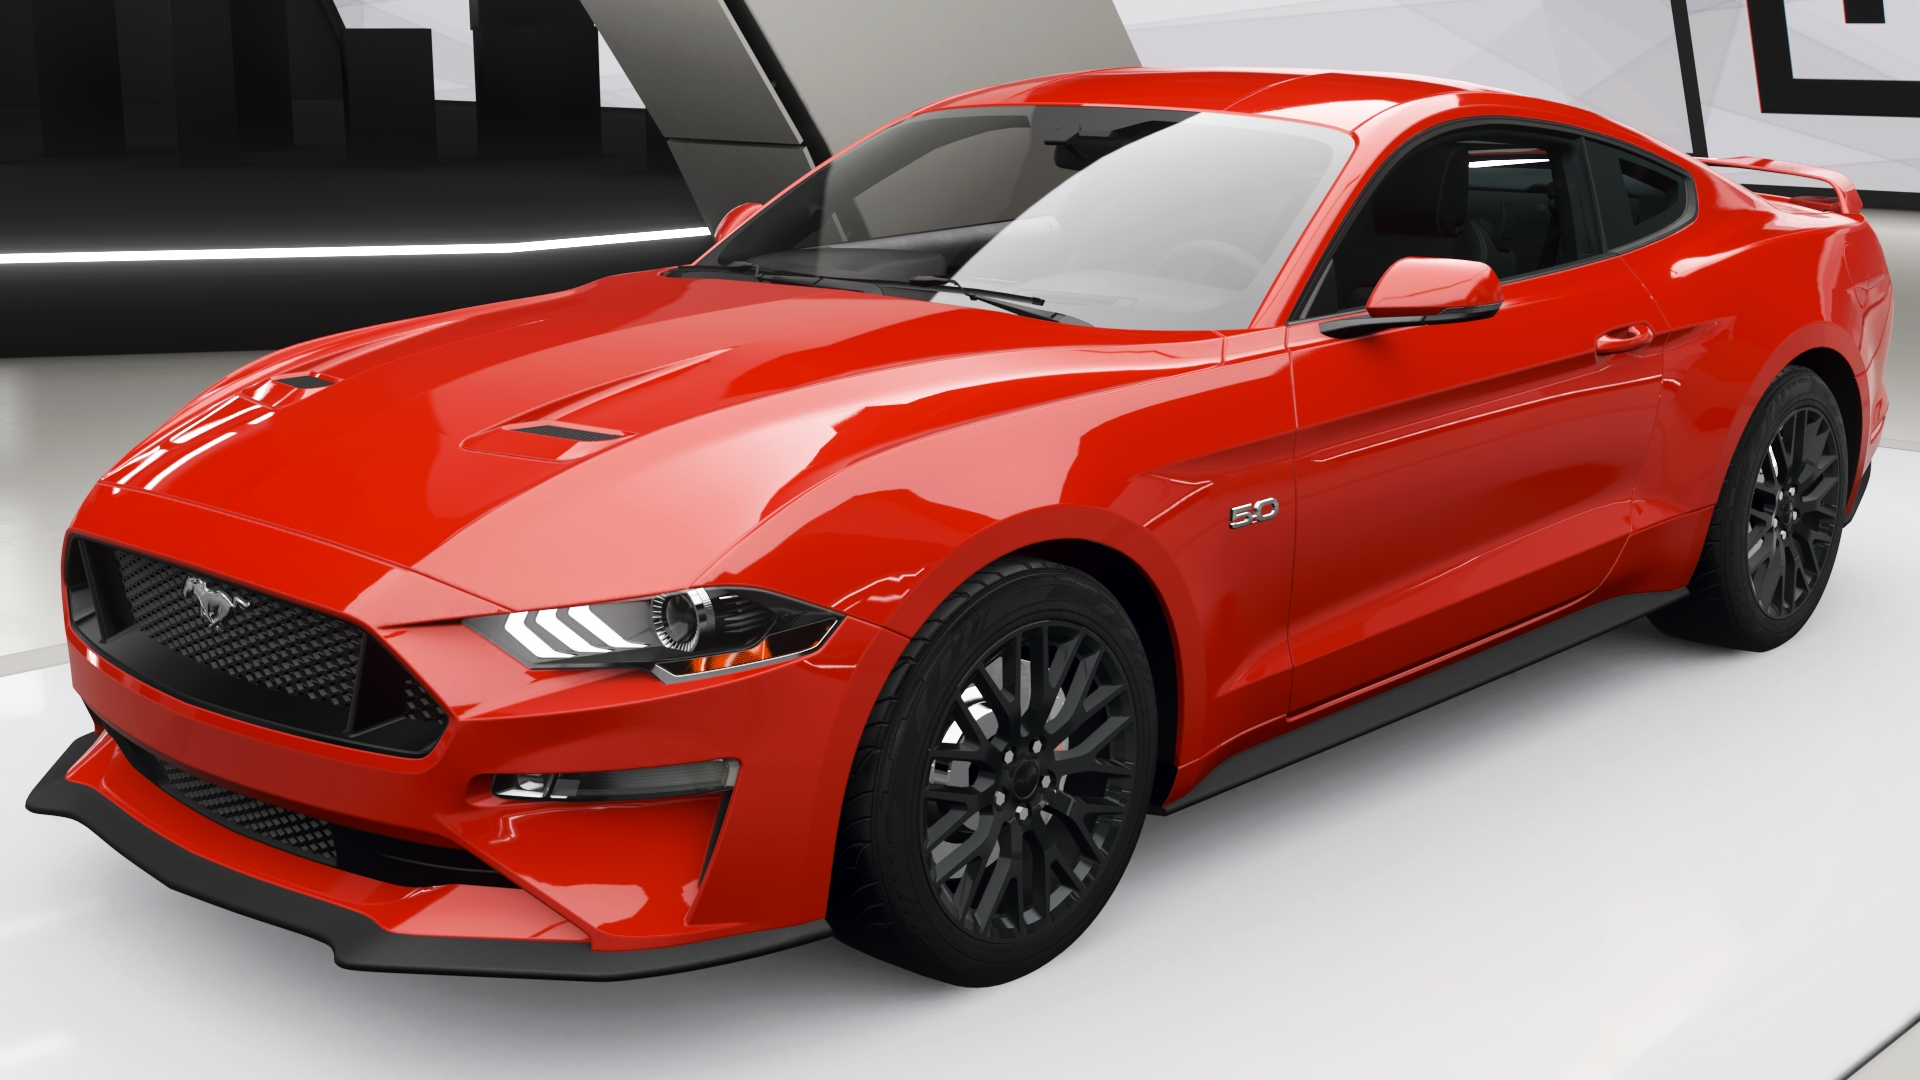 Ford mustang gt 2018 forza motorsport wiki fandom powered by wikia